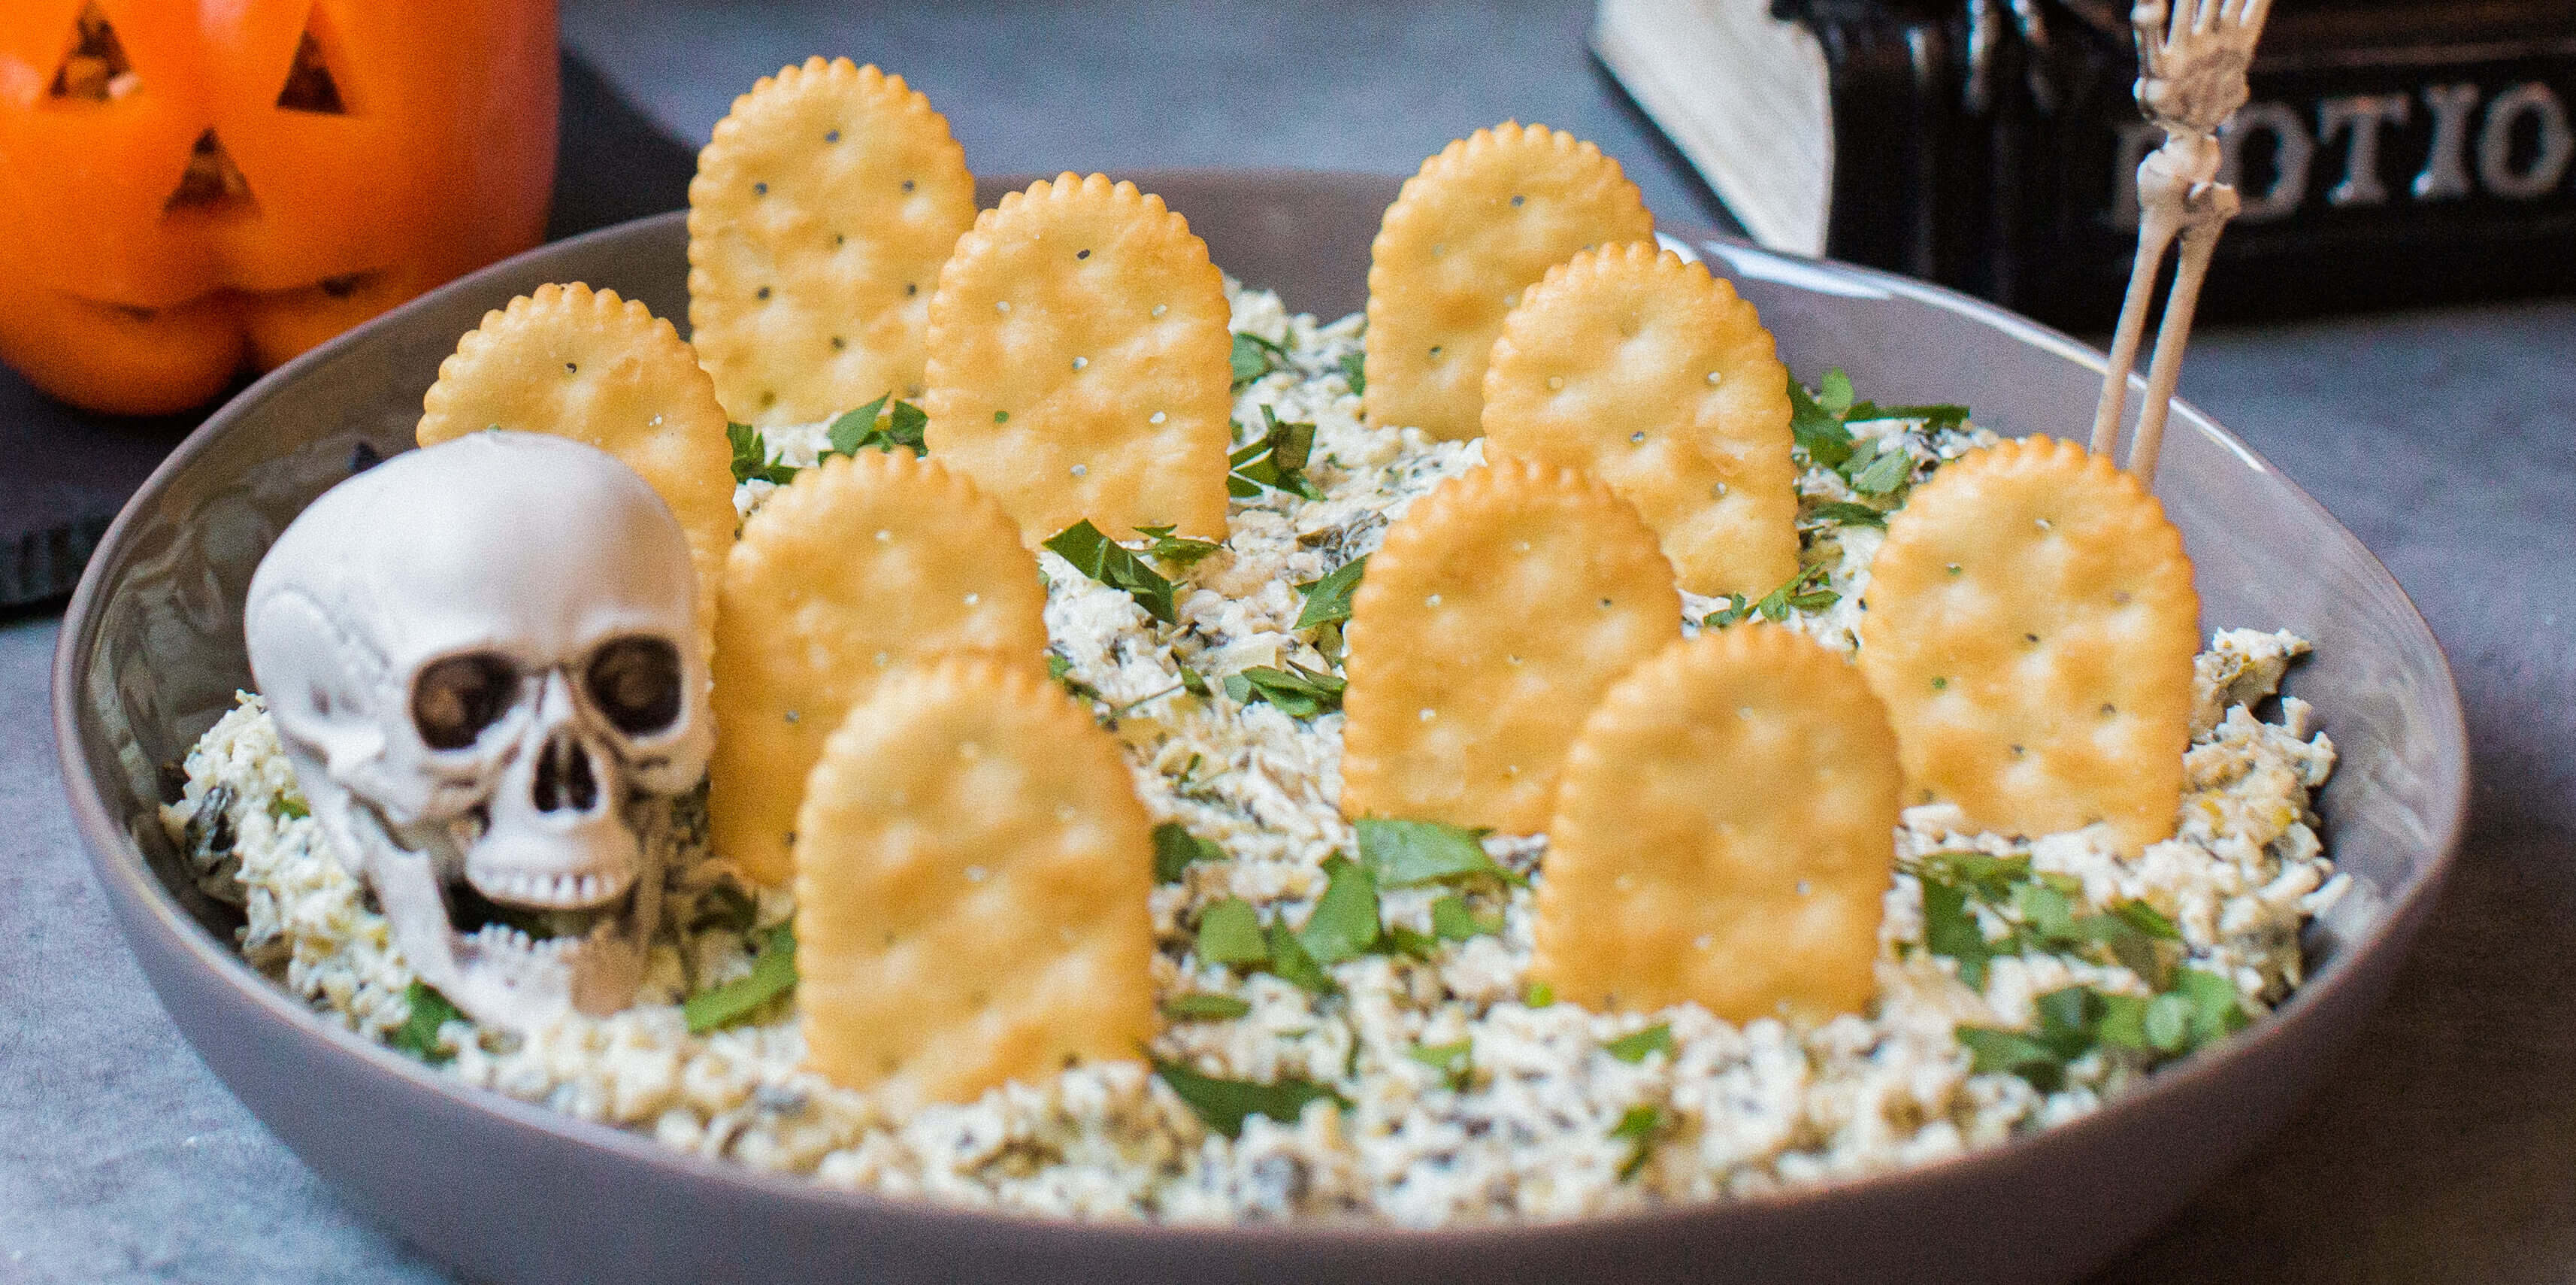 Hot Spinach and Artichoke Dip halloween food ideas